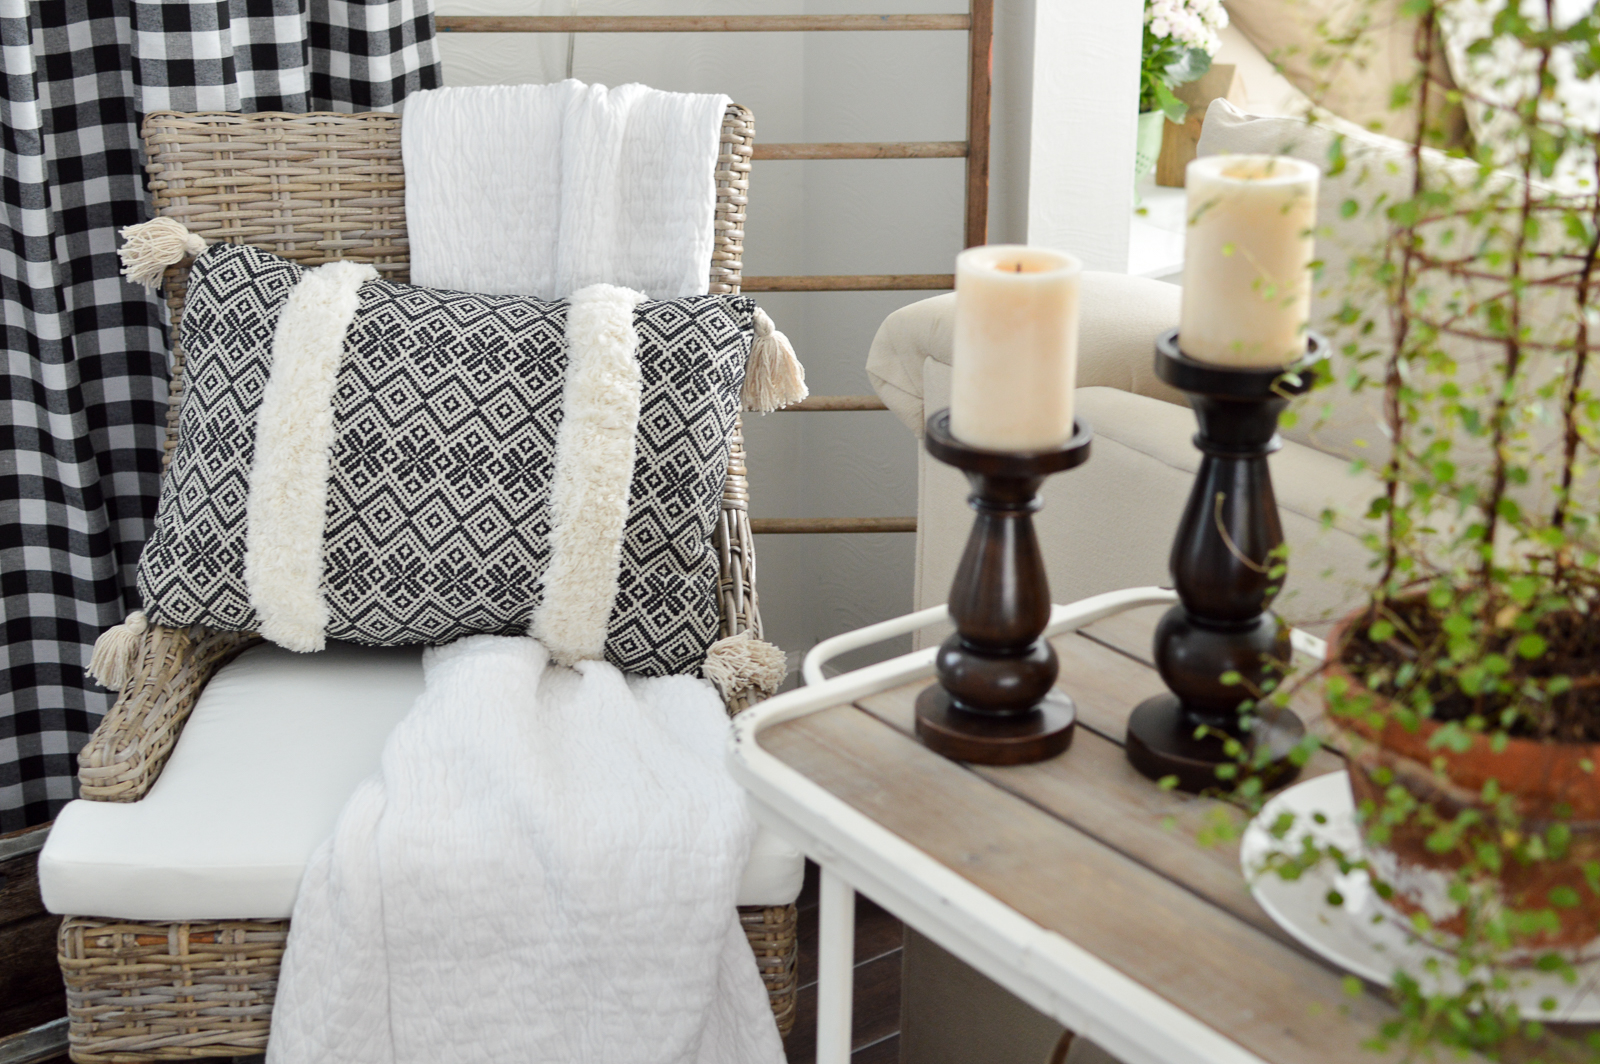 Outdoor In Spring Home Decor and Furniture Ideas #sponsored with Better Homes & Gardens at Walmart | Boho tassel pillow, woven chair, candle sticks, wood/metal farmhouse cart